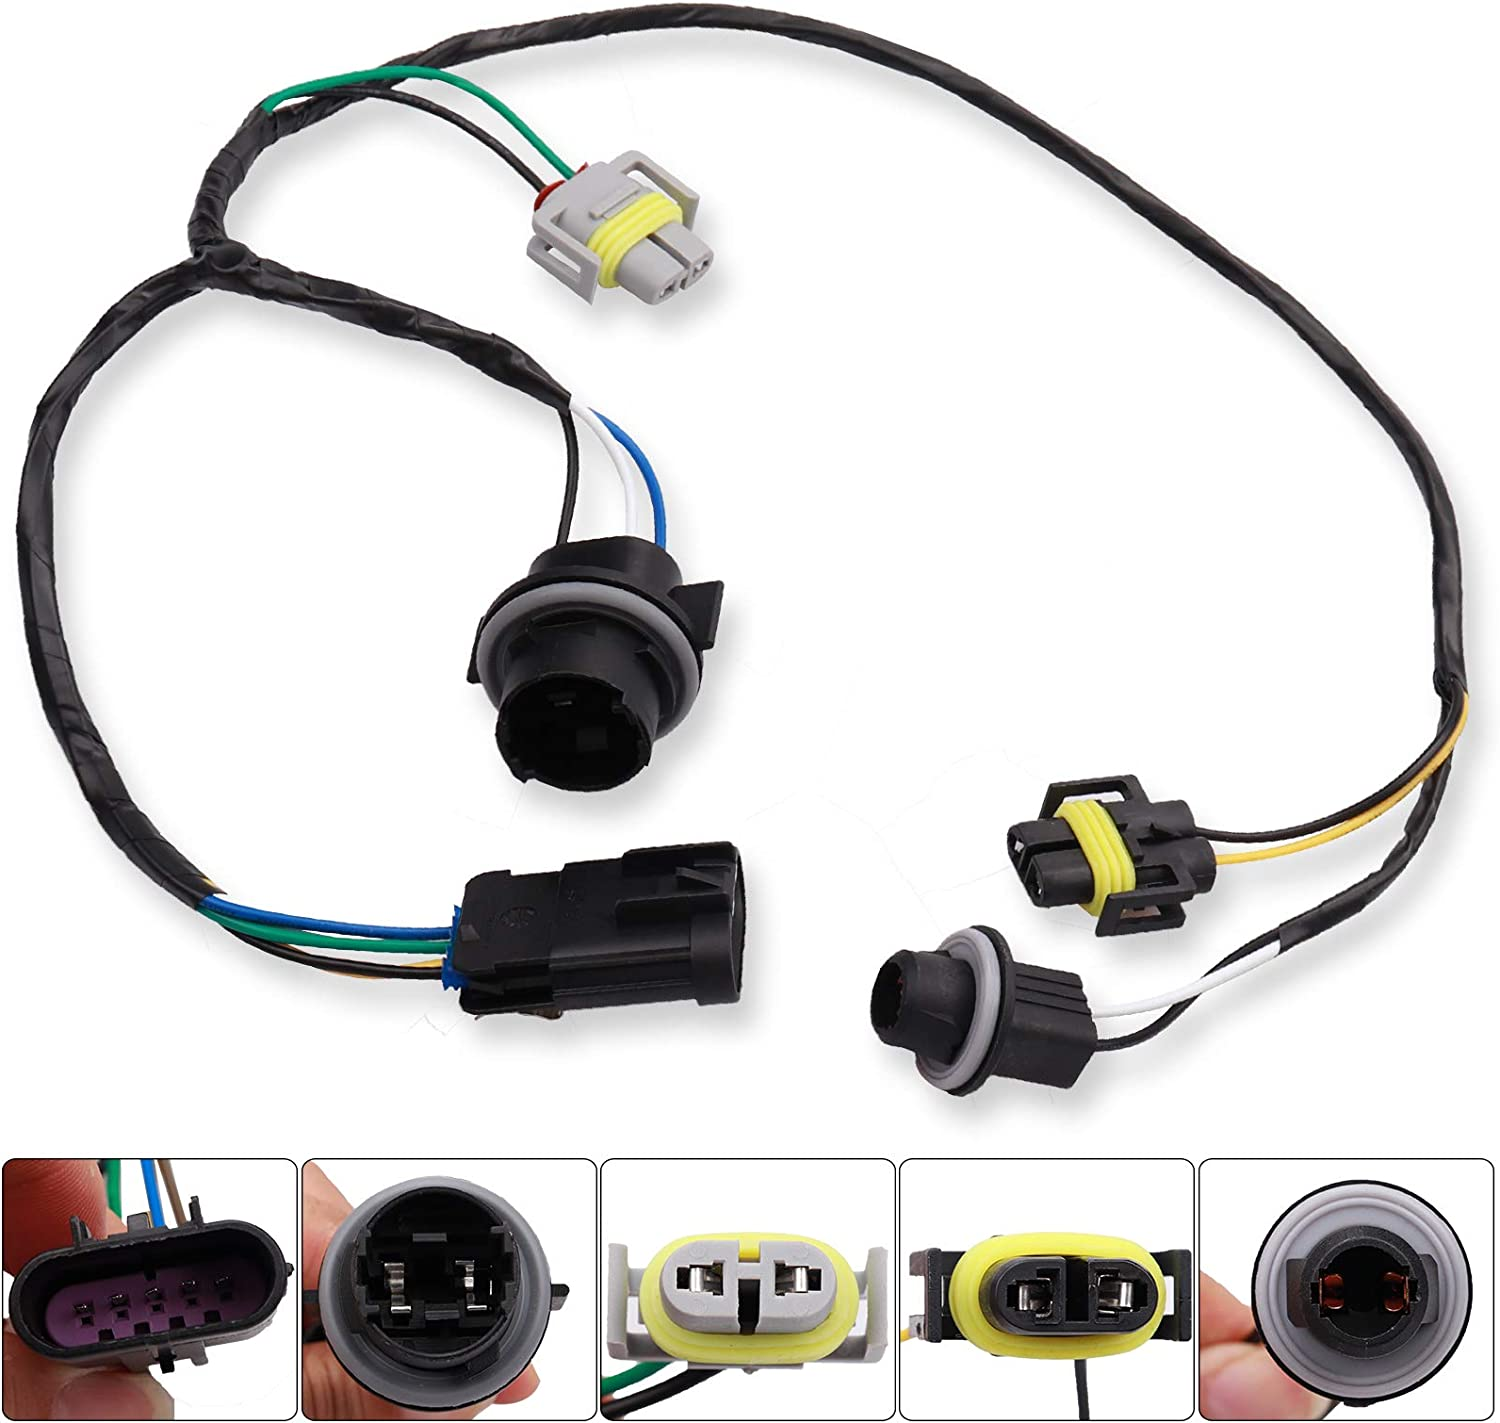 Amazon.com: 15930264 645-539 645539 Headlight Wiring Harness Connector  Compatible with 2008-2012 Chevy Malibu: Automotive   Chevrolet Malibu 2009 2012 20965912 Headlight Wiring Harness      Amazon